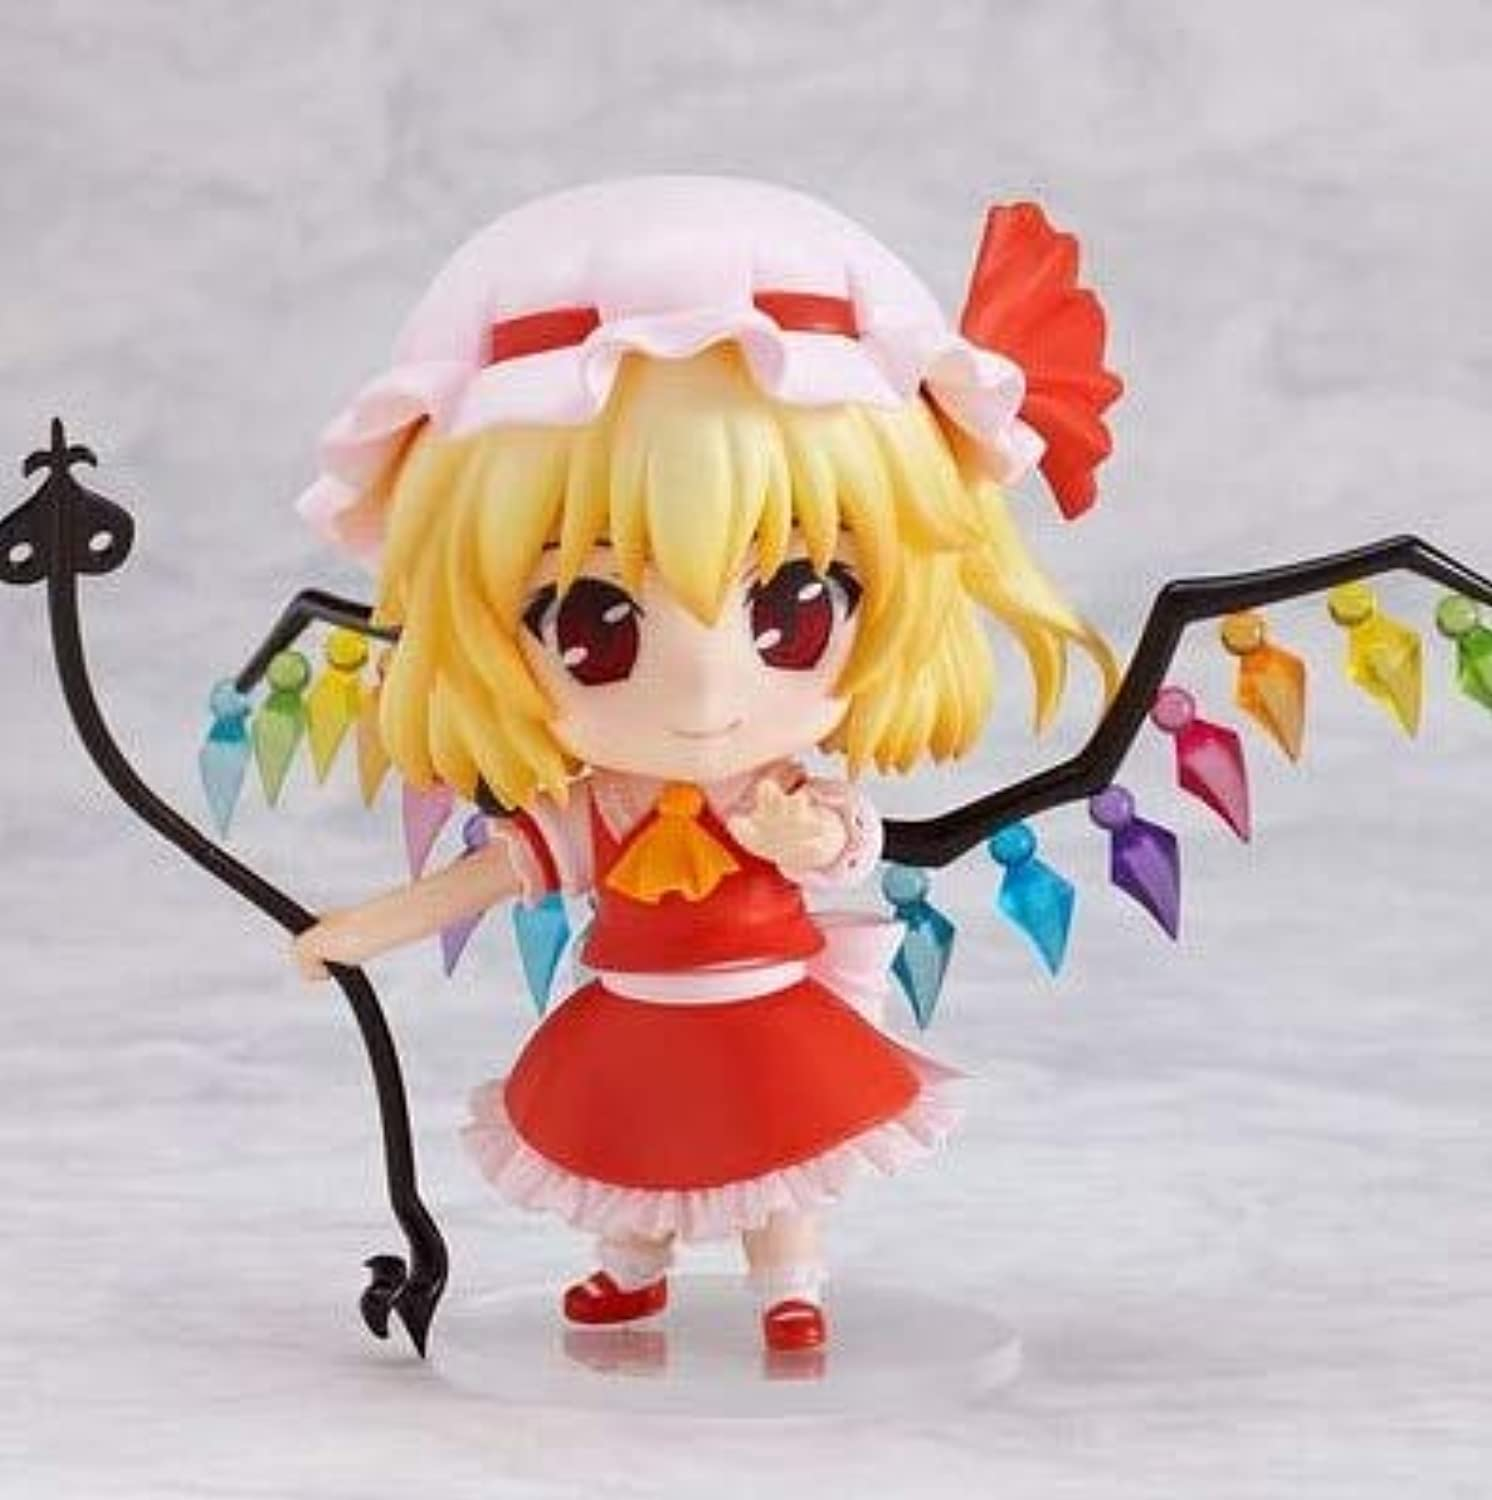 Allegro Huyer New hot 10cm Touhou Project Flandre Scarlet Movable Action Figure Toys Collection Christmas Toy Doll with Box